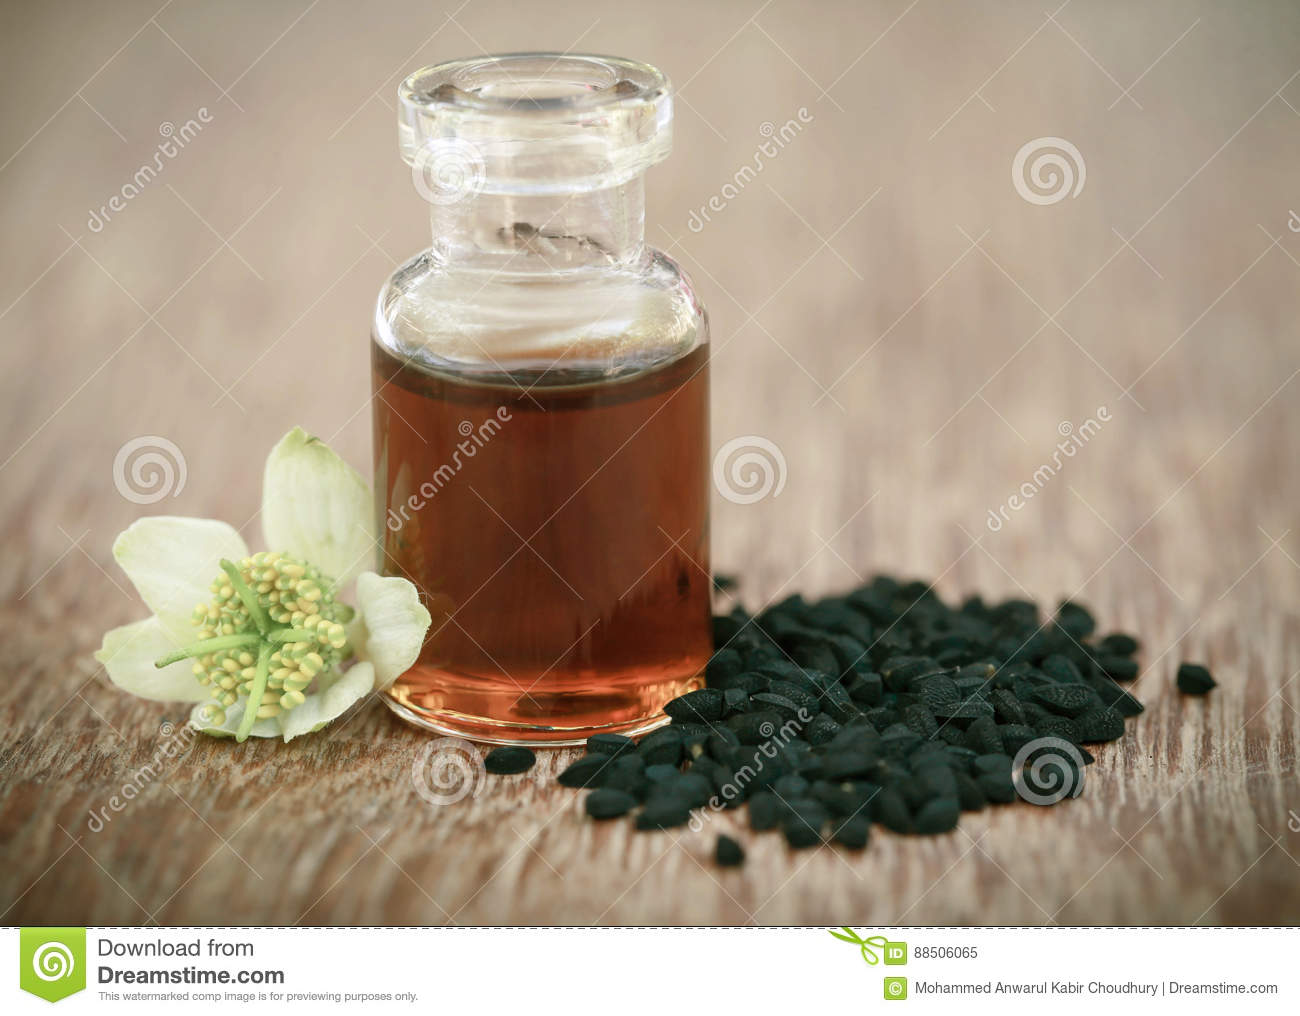 Nigella flower with seeds and essential oil